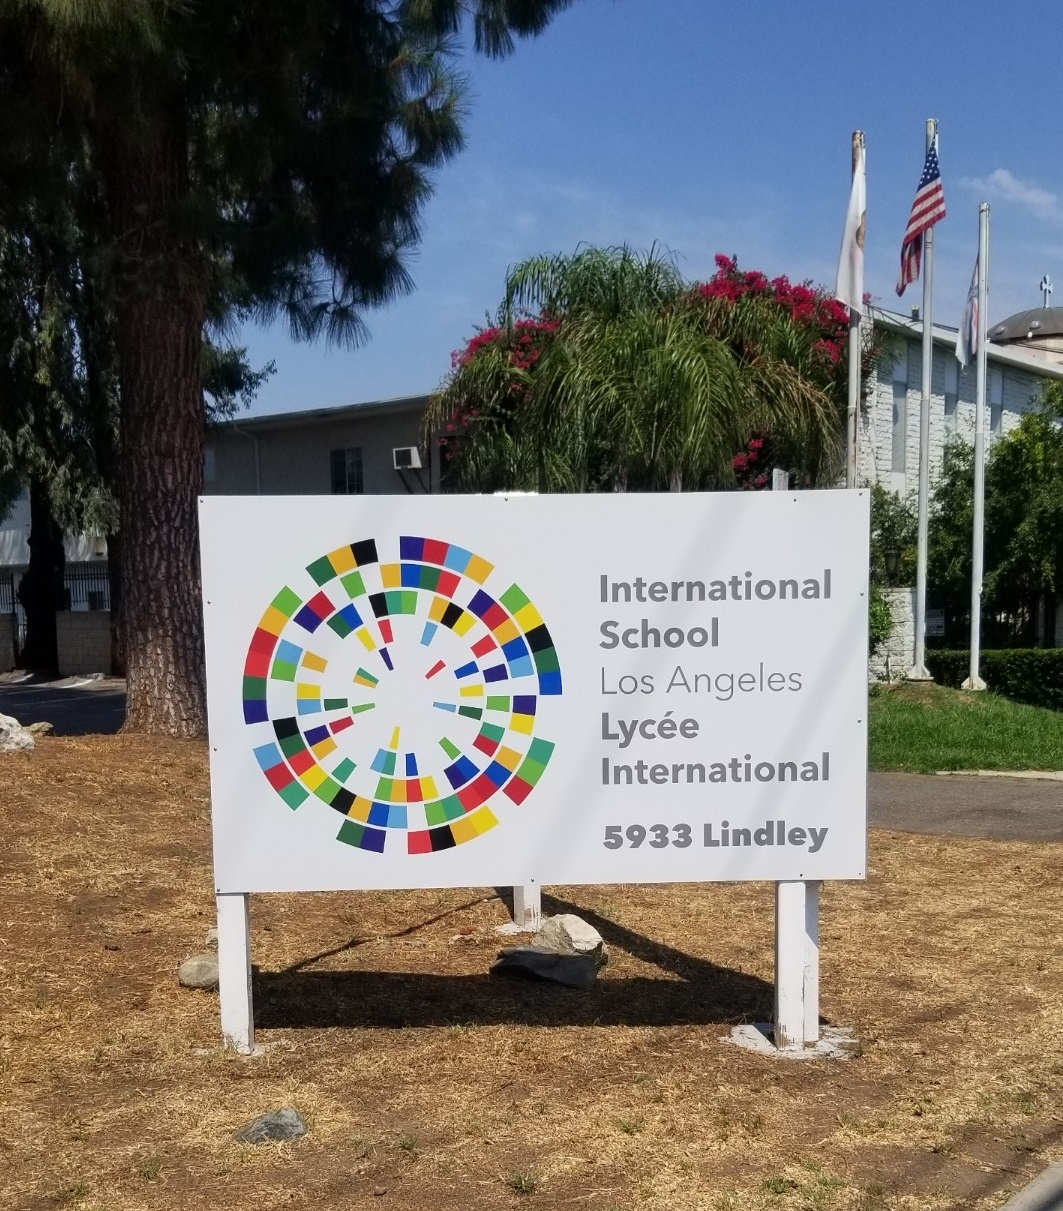 This is a post and panel school sign for the International School of Los Angeles in Tarzana to welcome its students and their parents better.